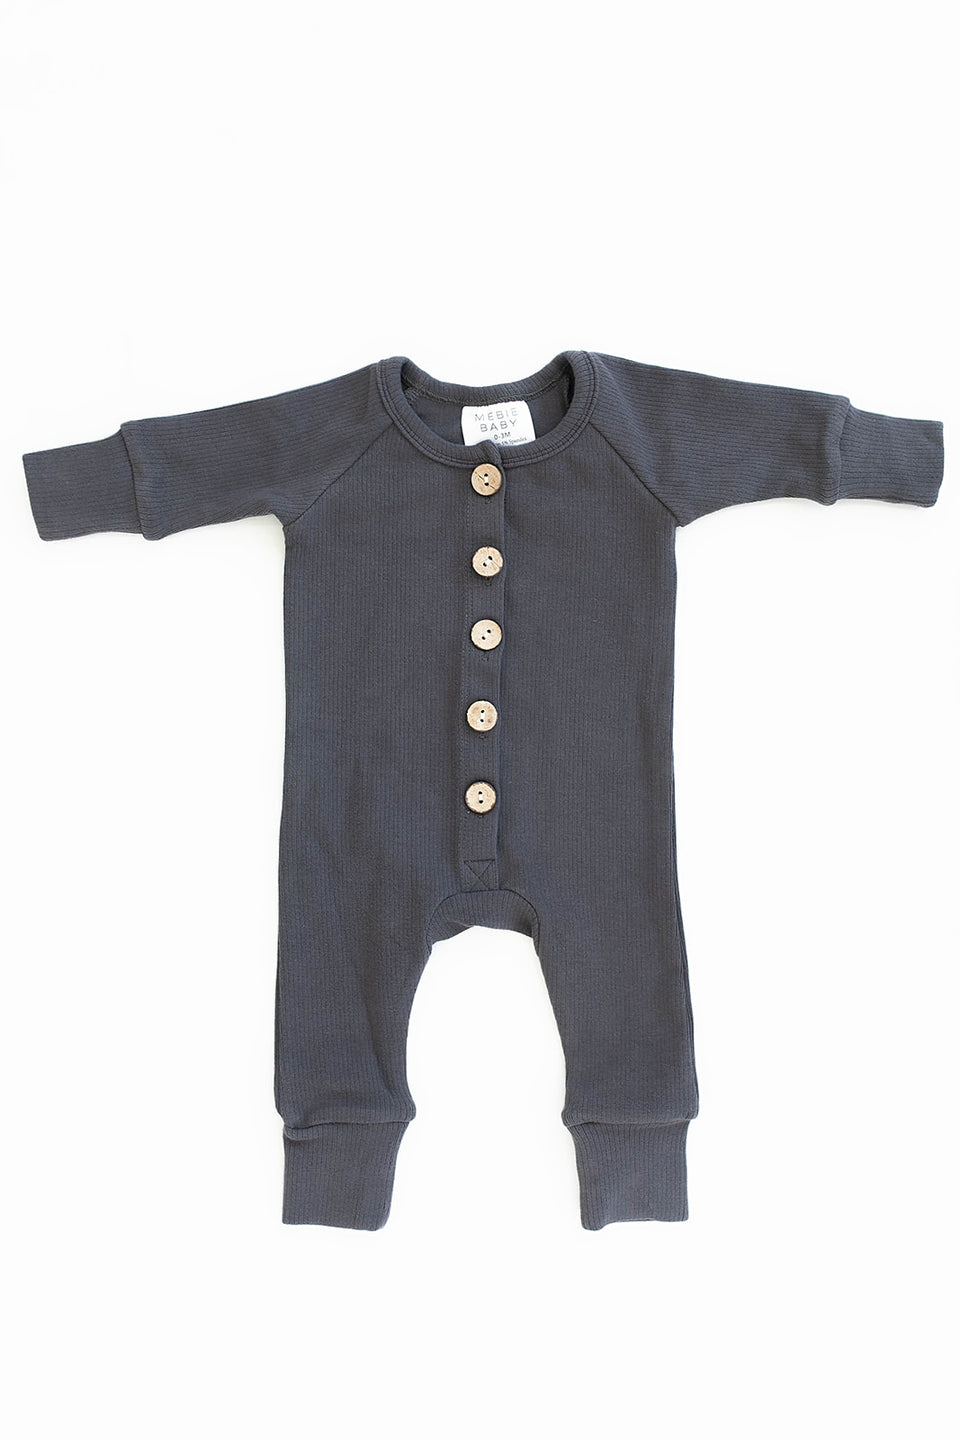 Baby Romper with Wooden Buttons in Dusty Charcoal Color